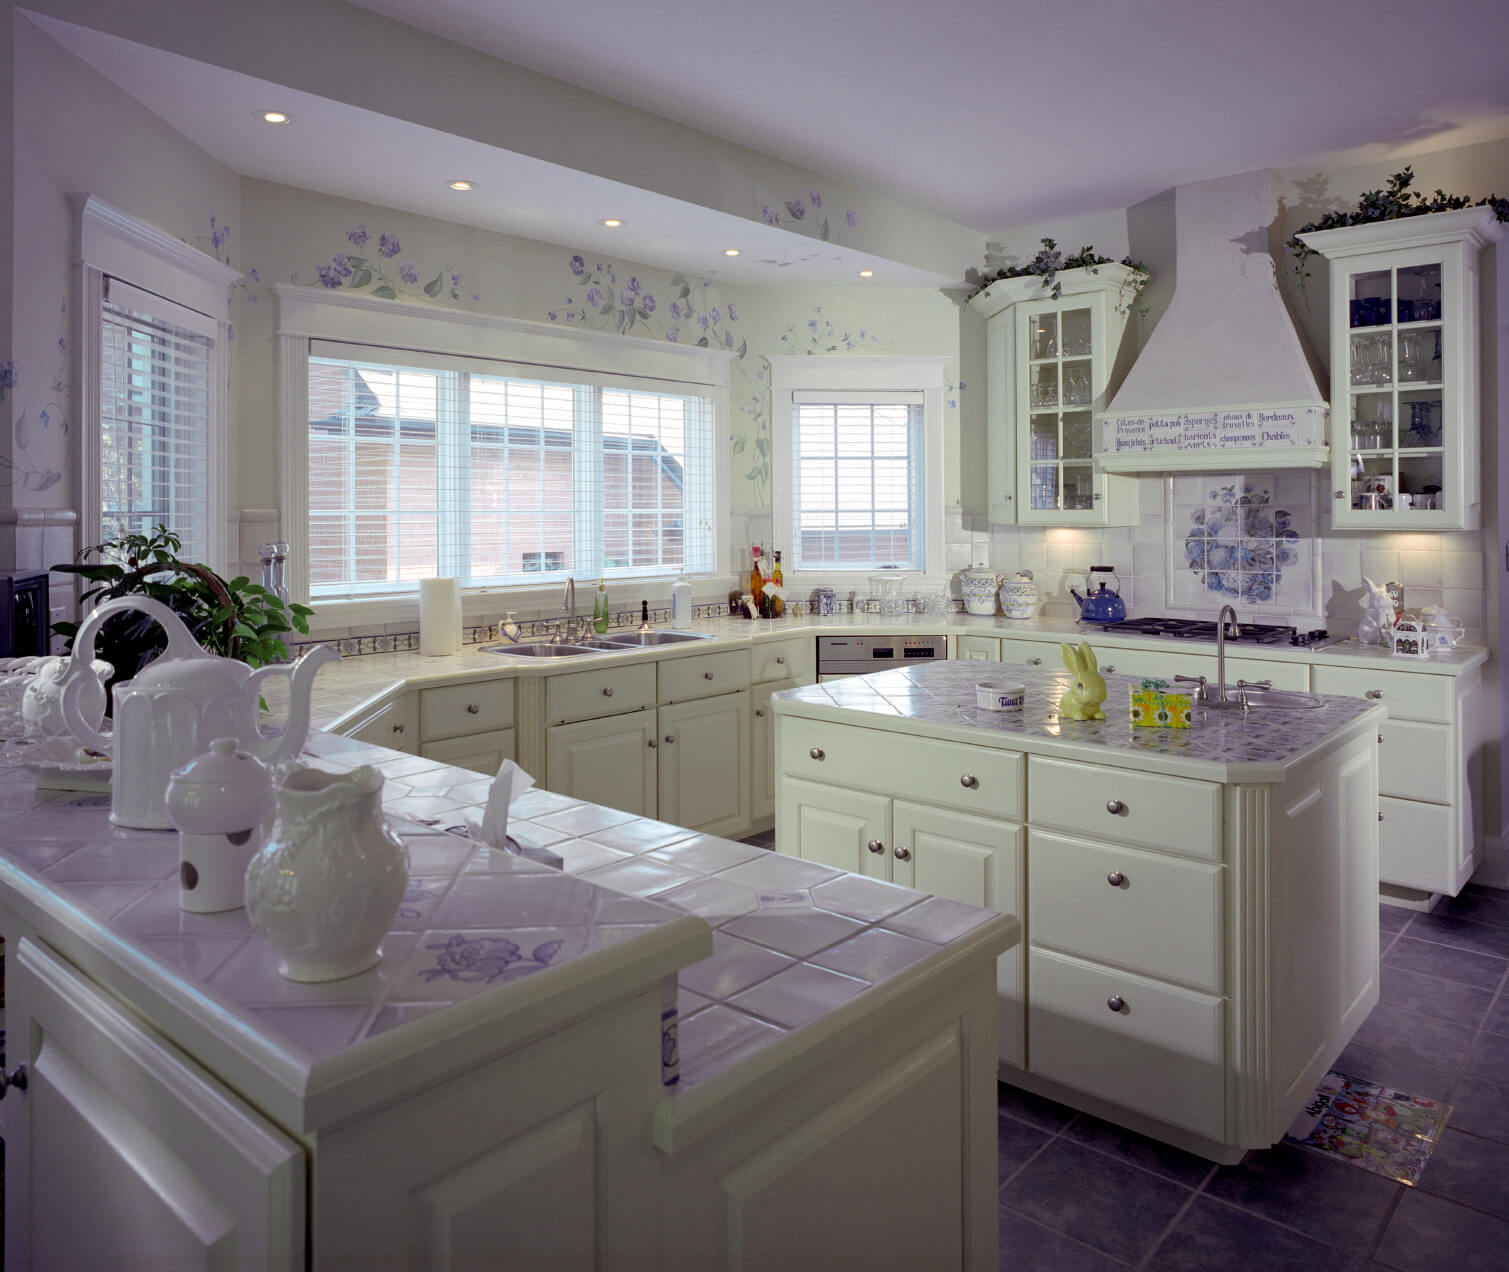 Flooring Options Kitchen: 22 Kitchen Flooring Options And Ideas (Pros & Cons